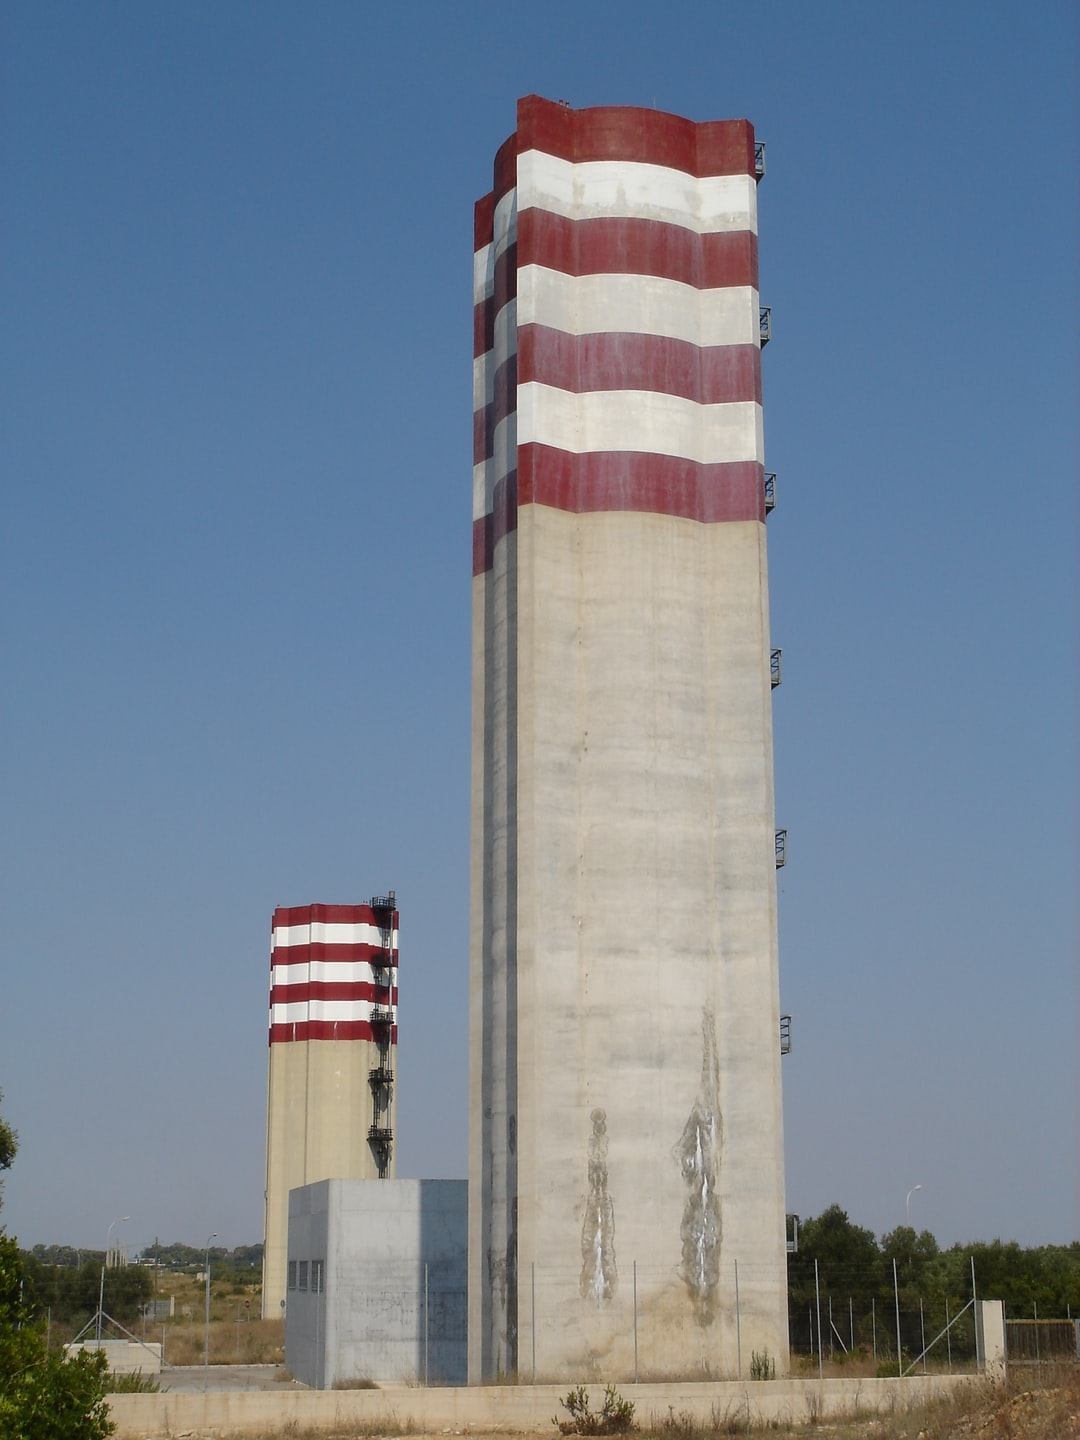 Strange twin towers near the town of Avetrana in Puglia, Southern Italy. Probably water reservoirs.